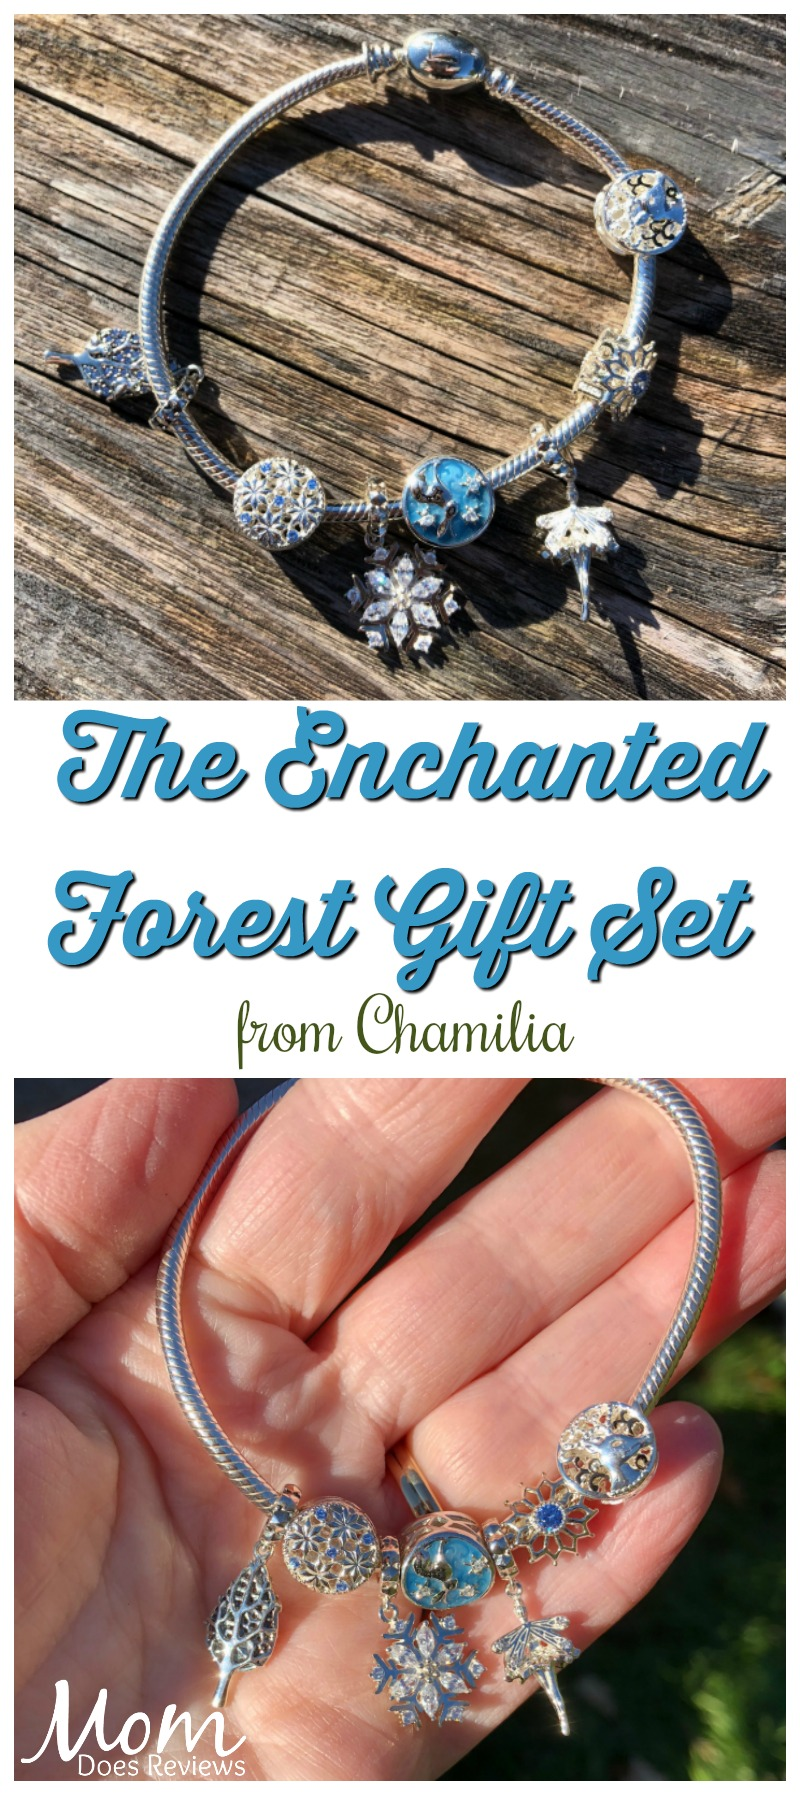 Give the Enchanted Forest Gift Set from Chamilia for a Magical Christmas! #MEGAChristmas18 #jewelry #gifts #giftideas